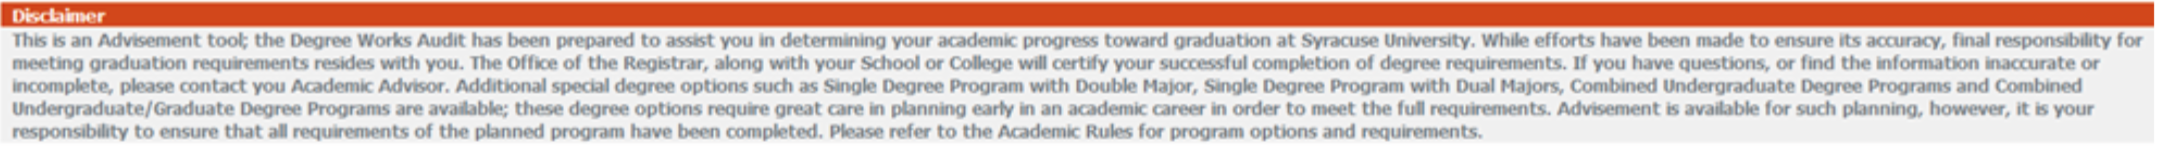 Disclaimer on Degree Works audit